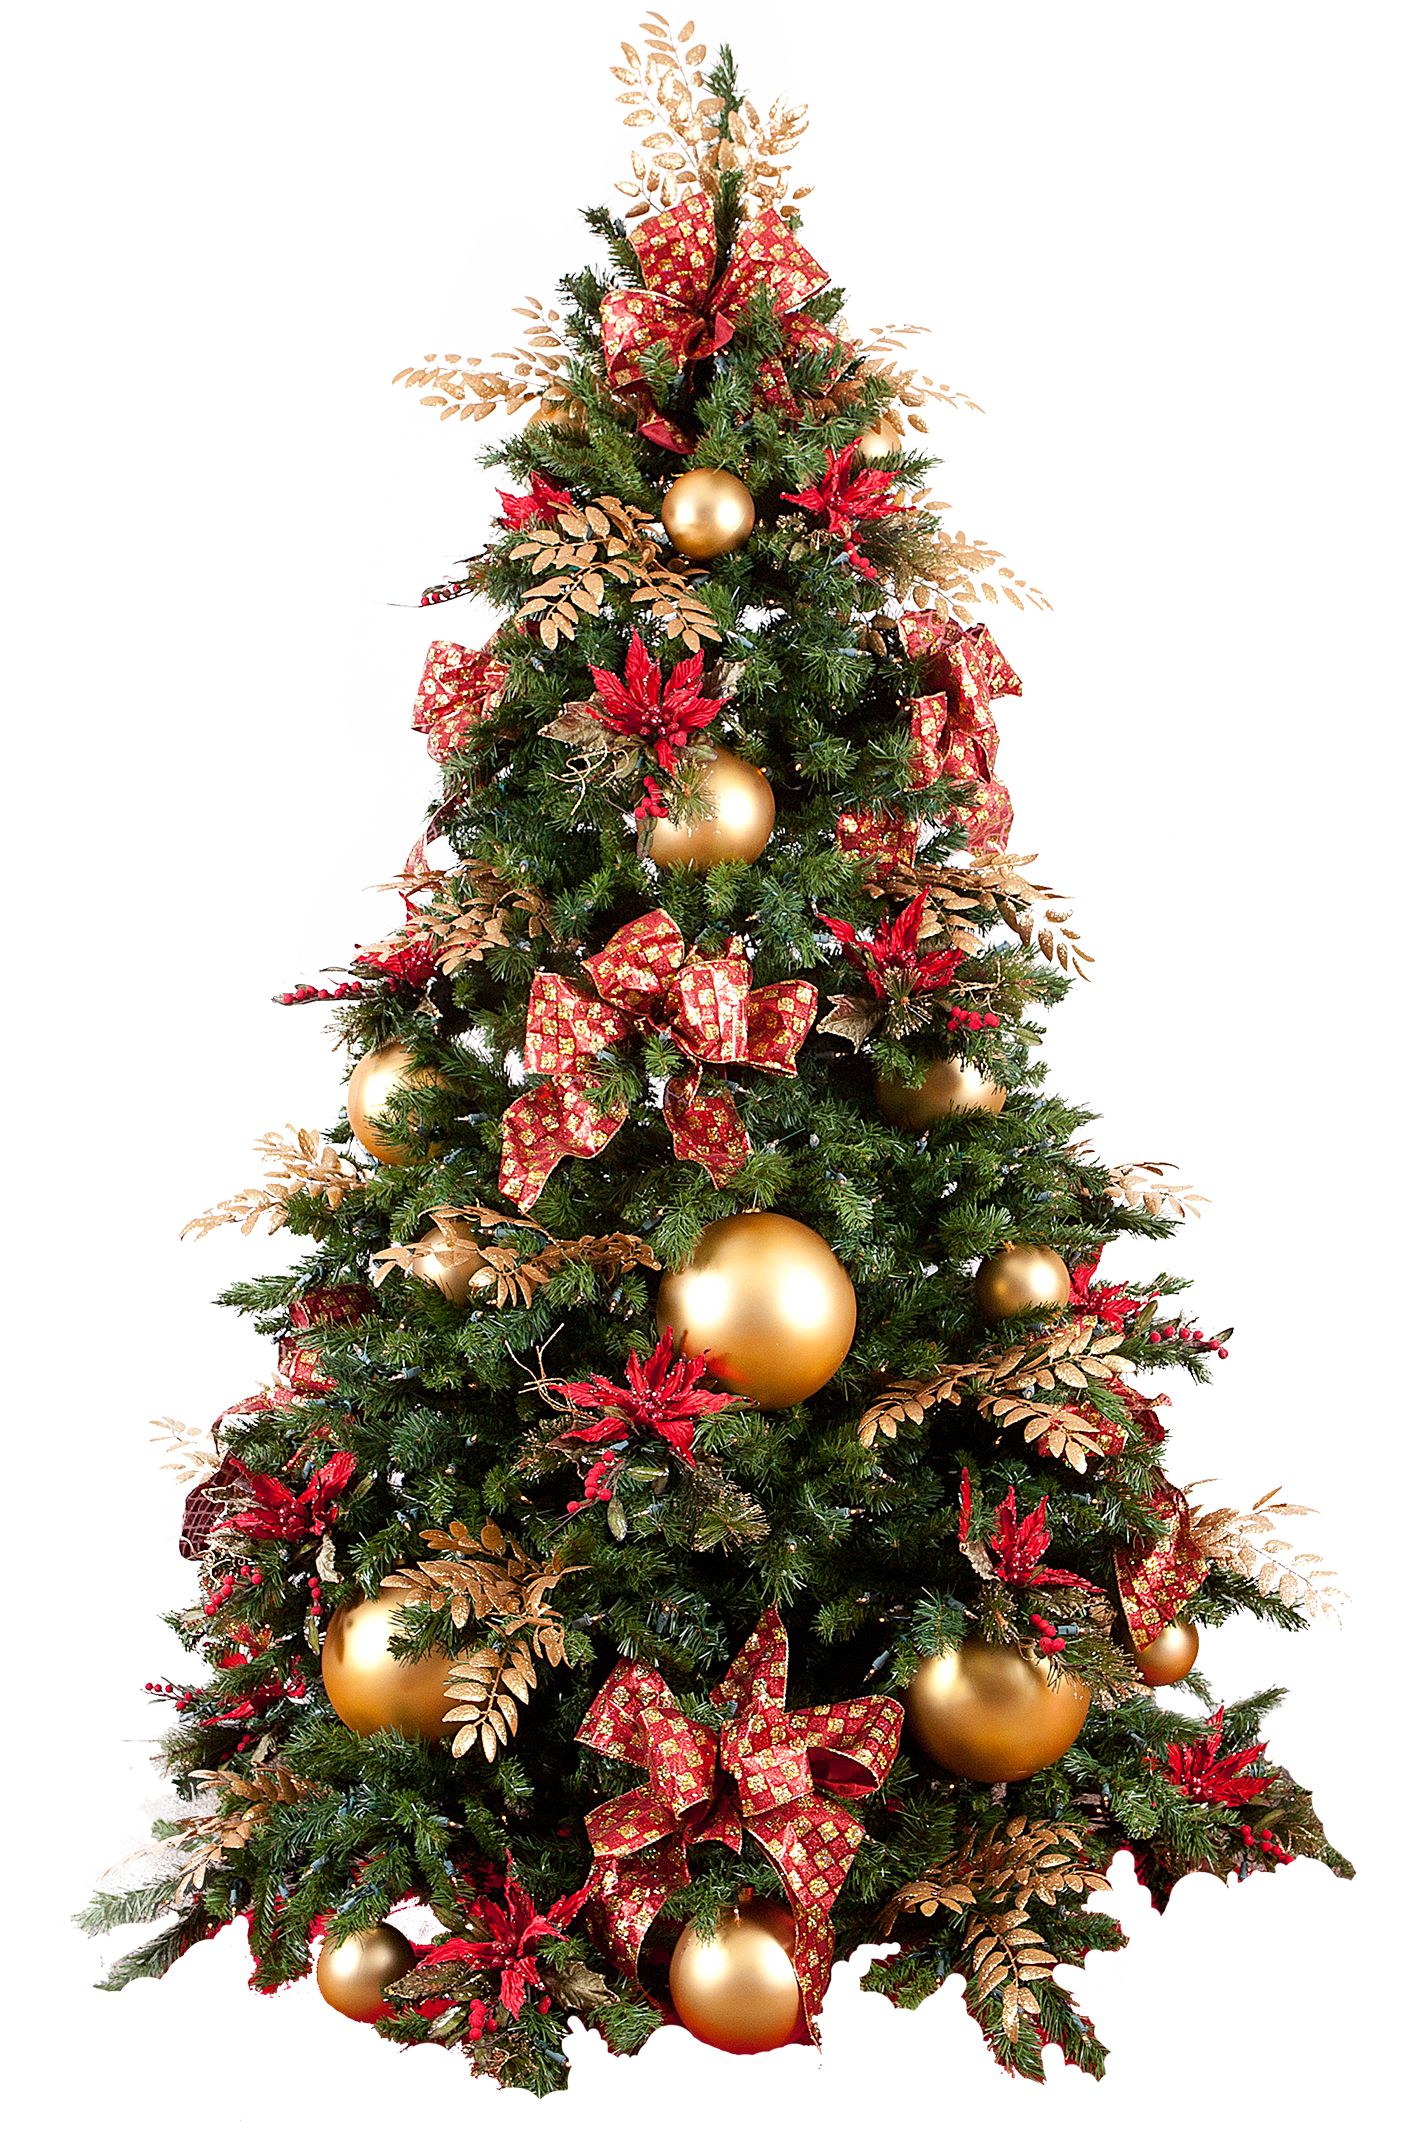 Christmas tree png. Images free download